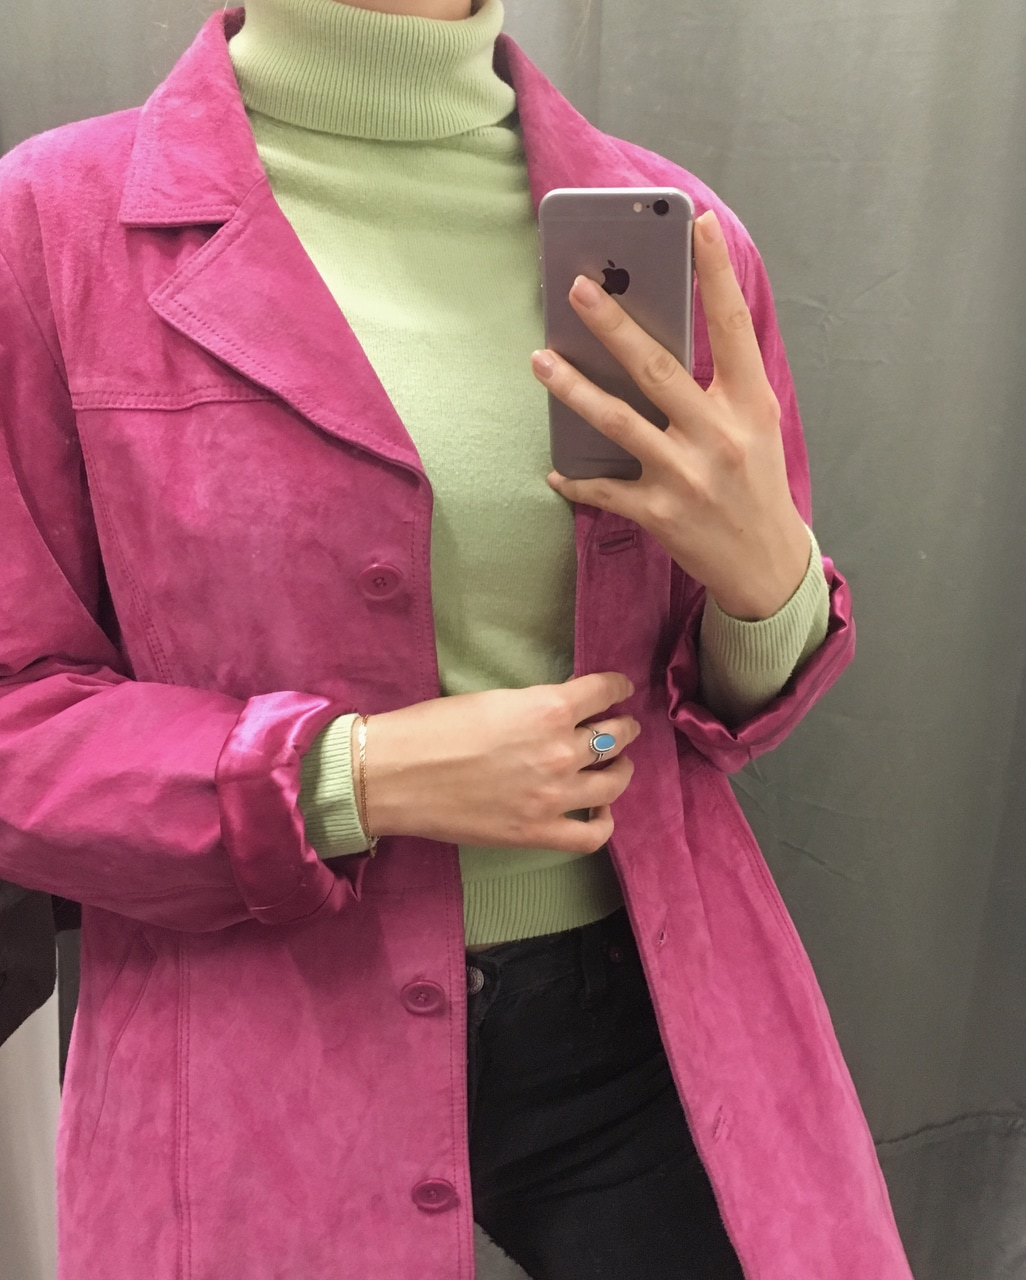 style, thrift, second hand and fashion